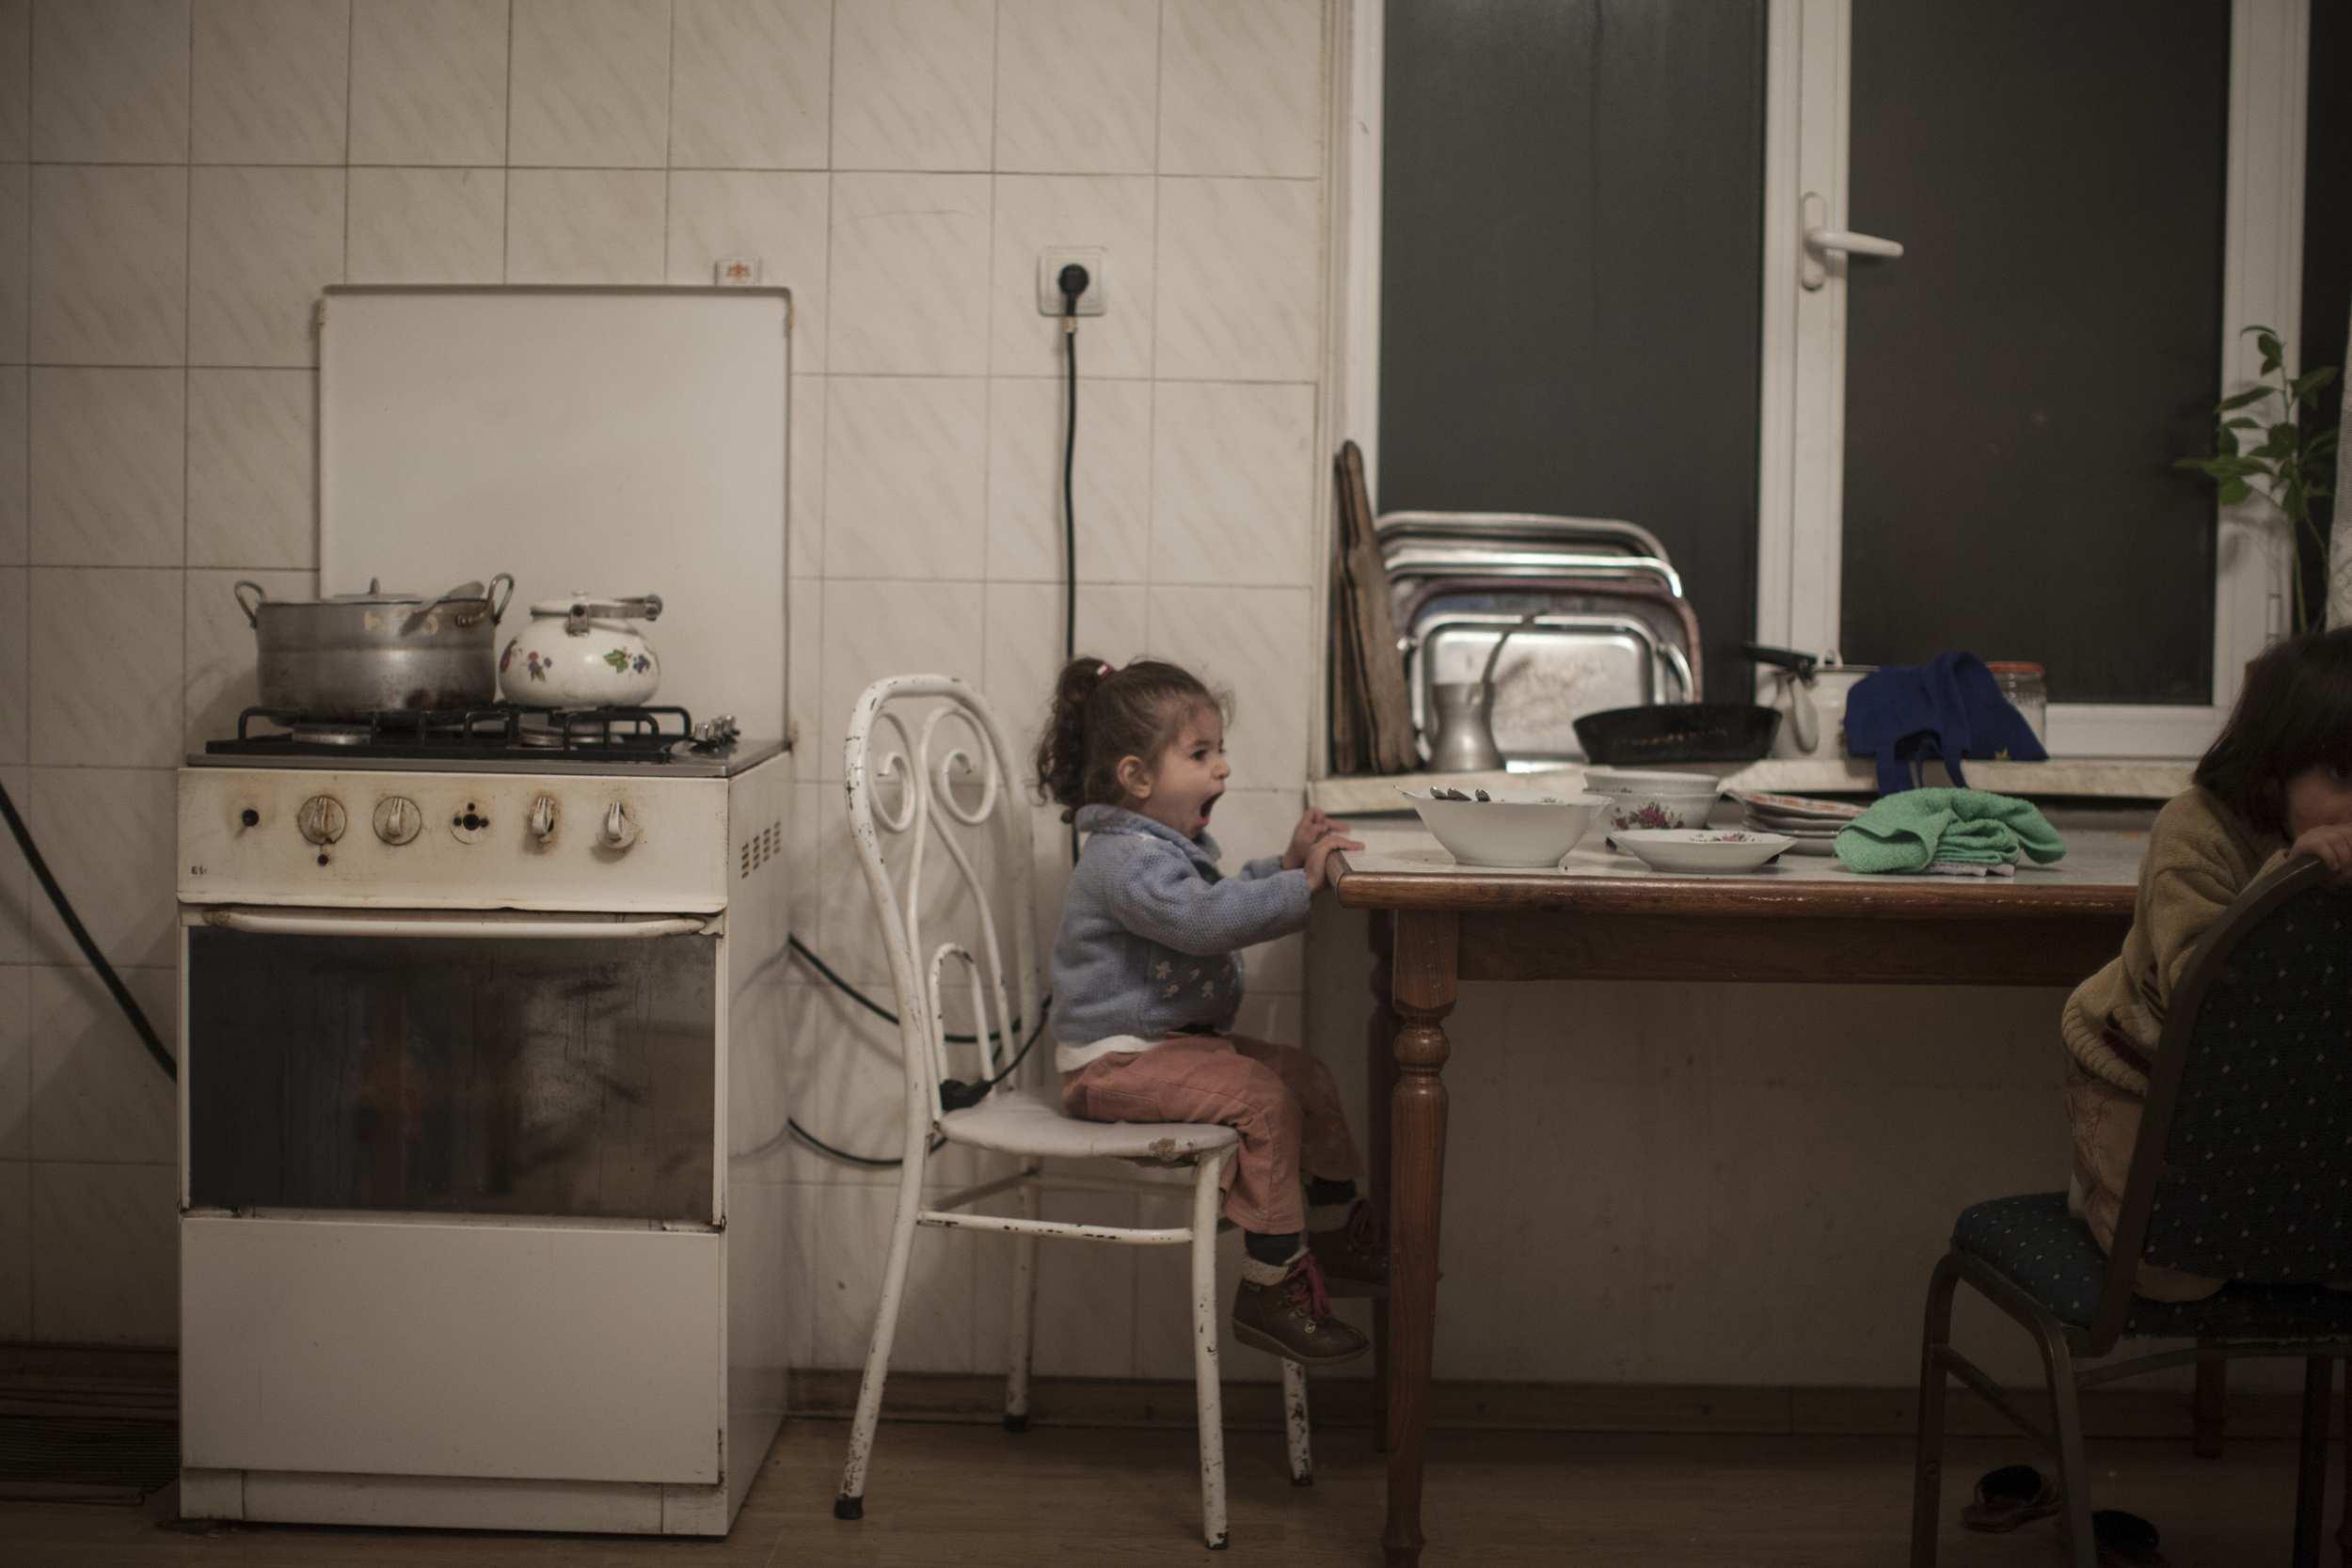 A young Syrian-Armenian girl in the kitchen of abuilding shared with a number ofSyrian-Armenian families.